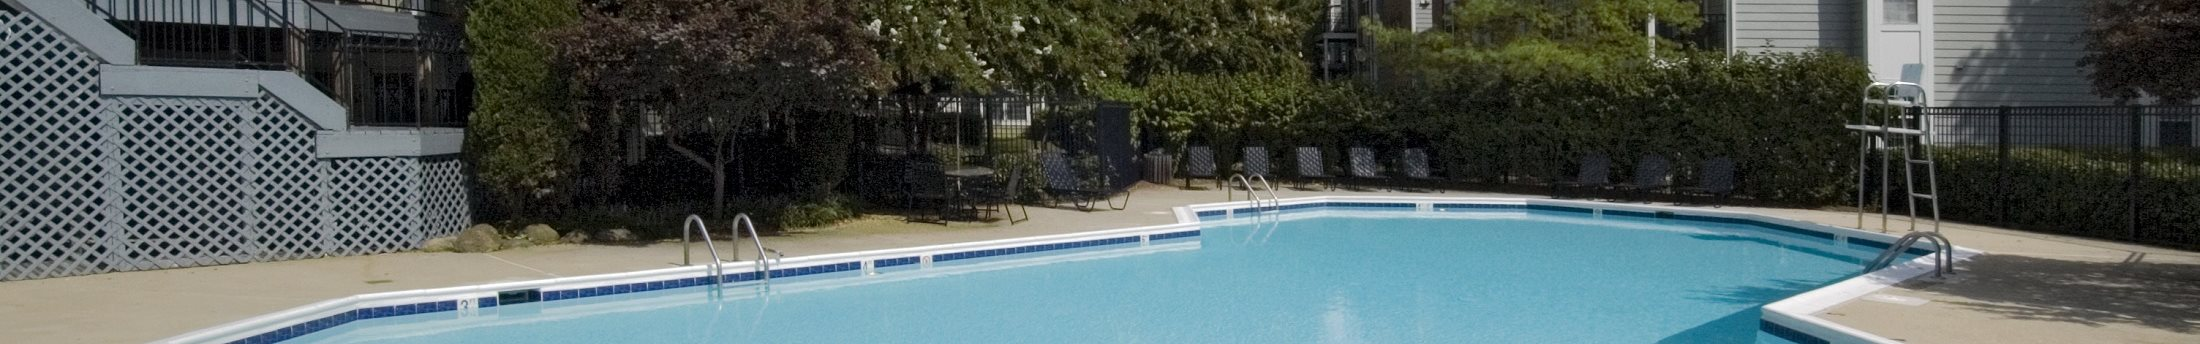 Edgemoore contact us Swimming pools in alexandria va